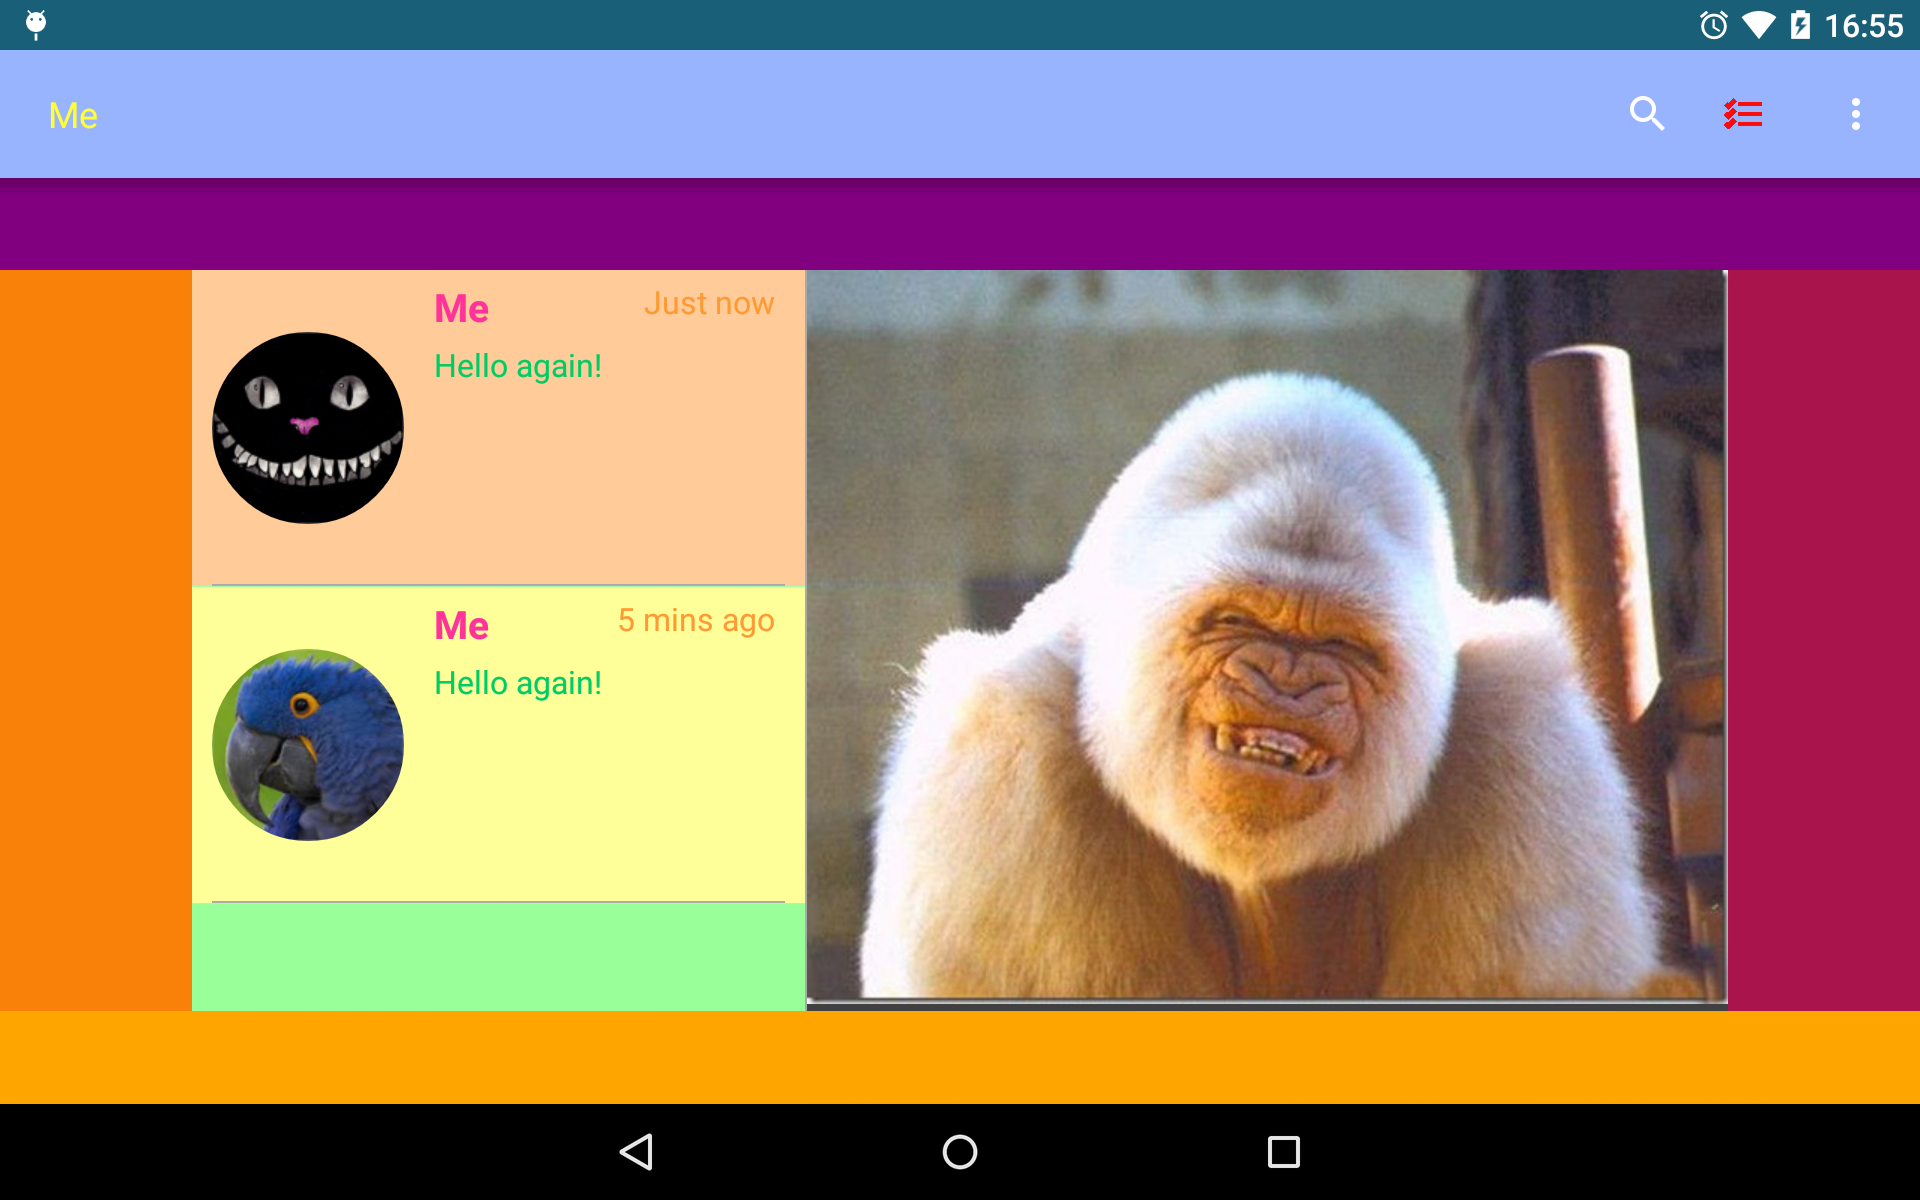 Customisation example for Android.